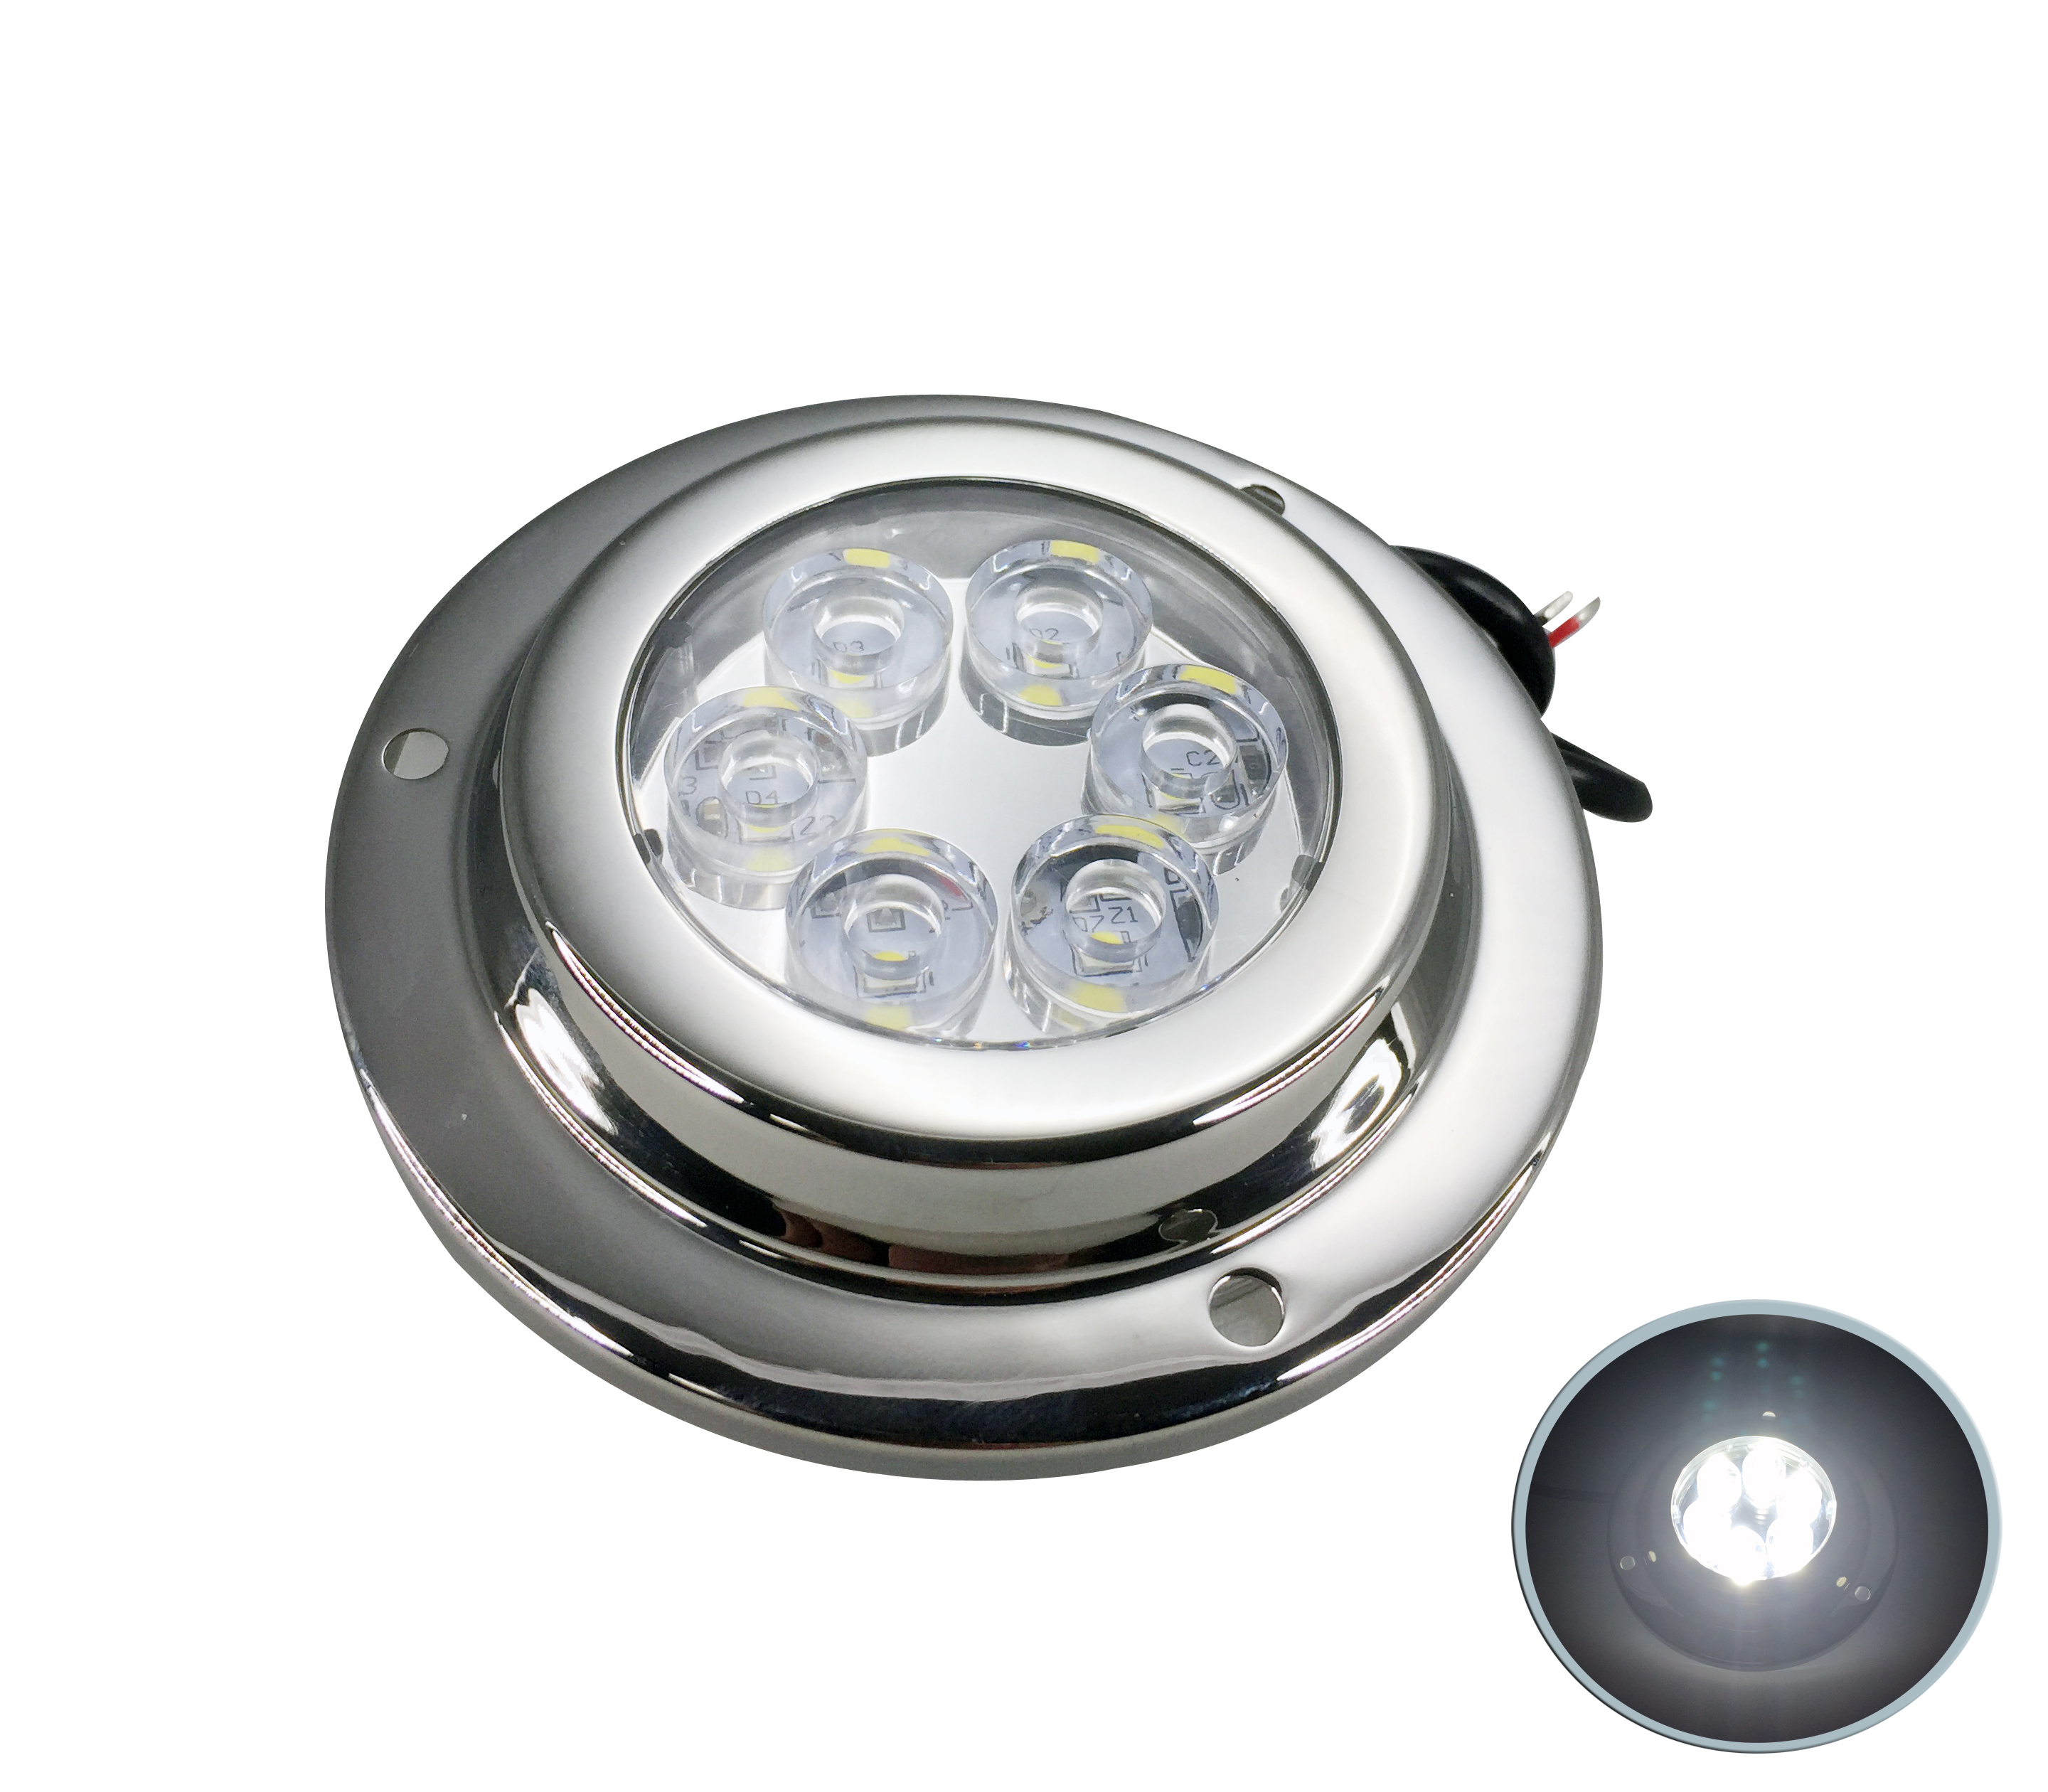 Boat SS316 LED White 6 x 2 W Underwater Light 10-30V IP 68